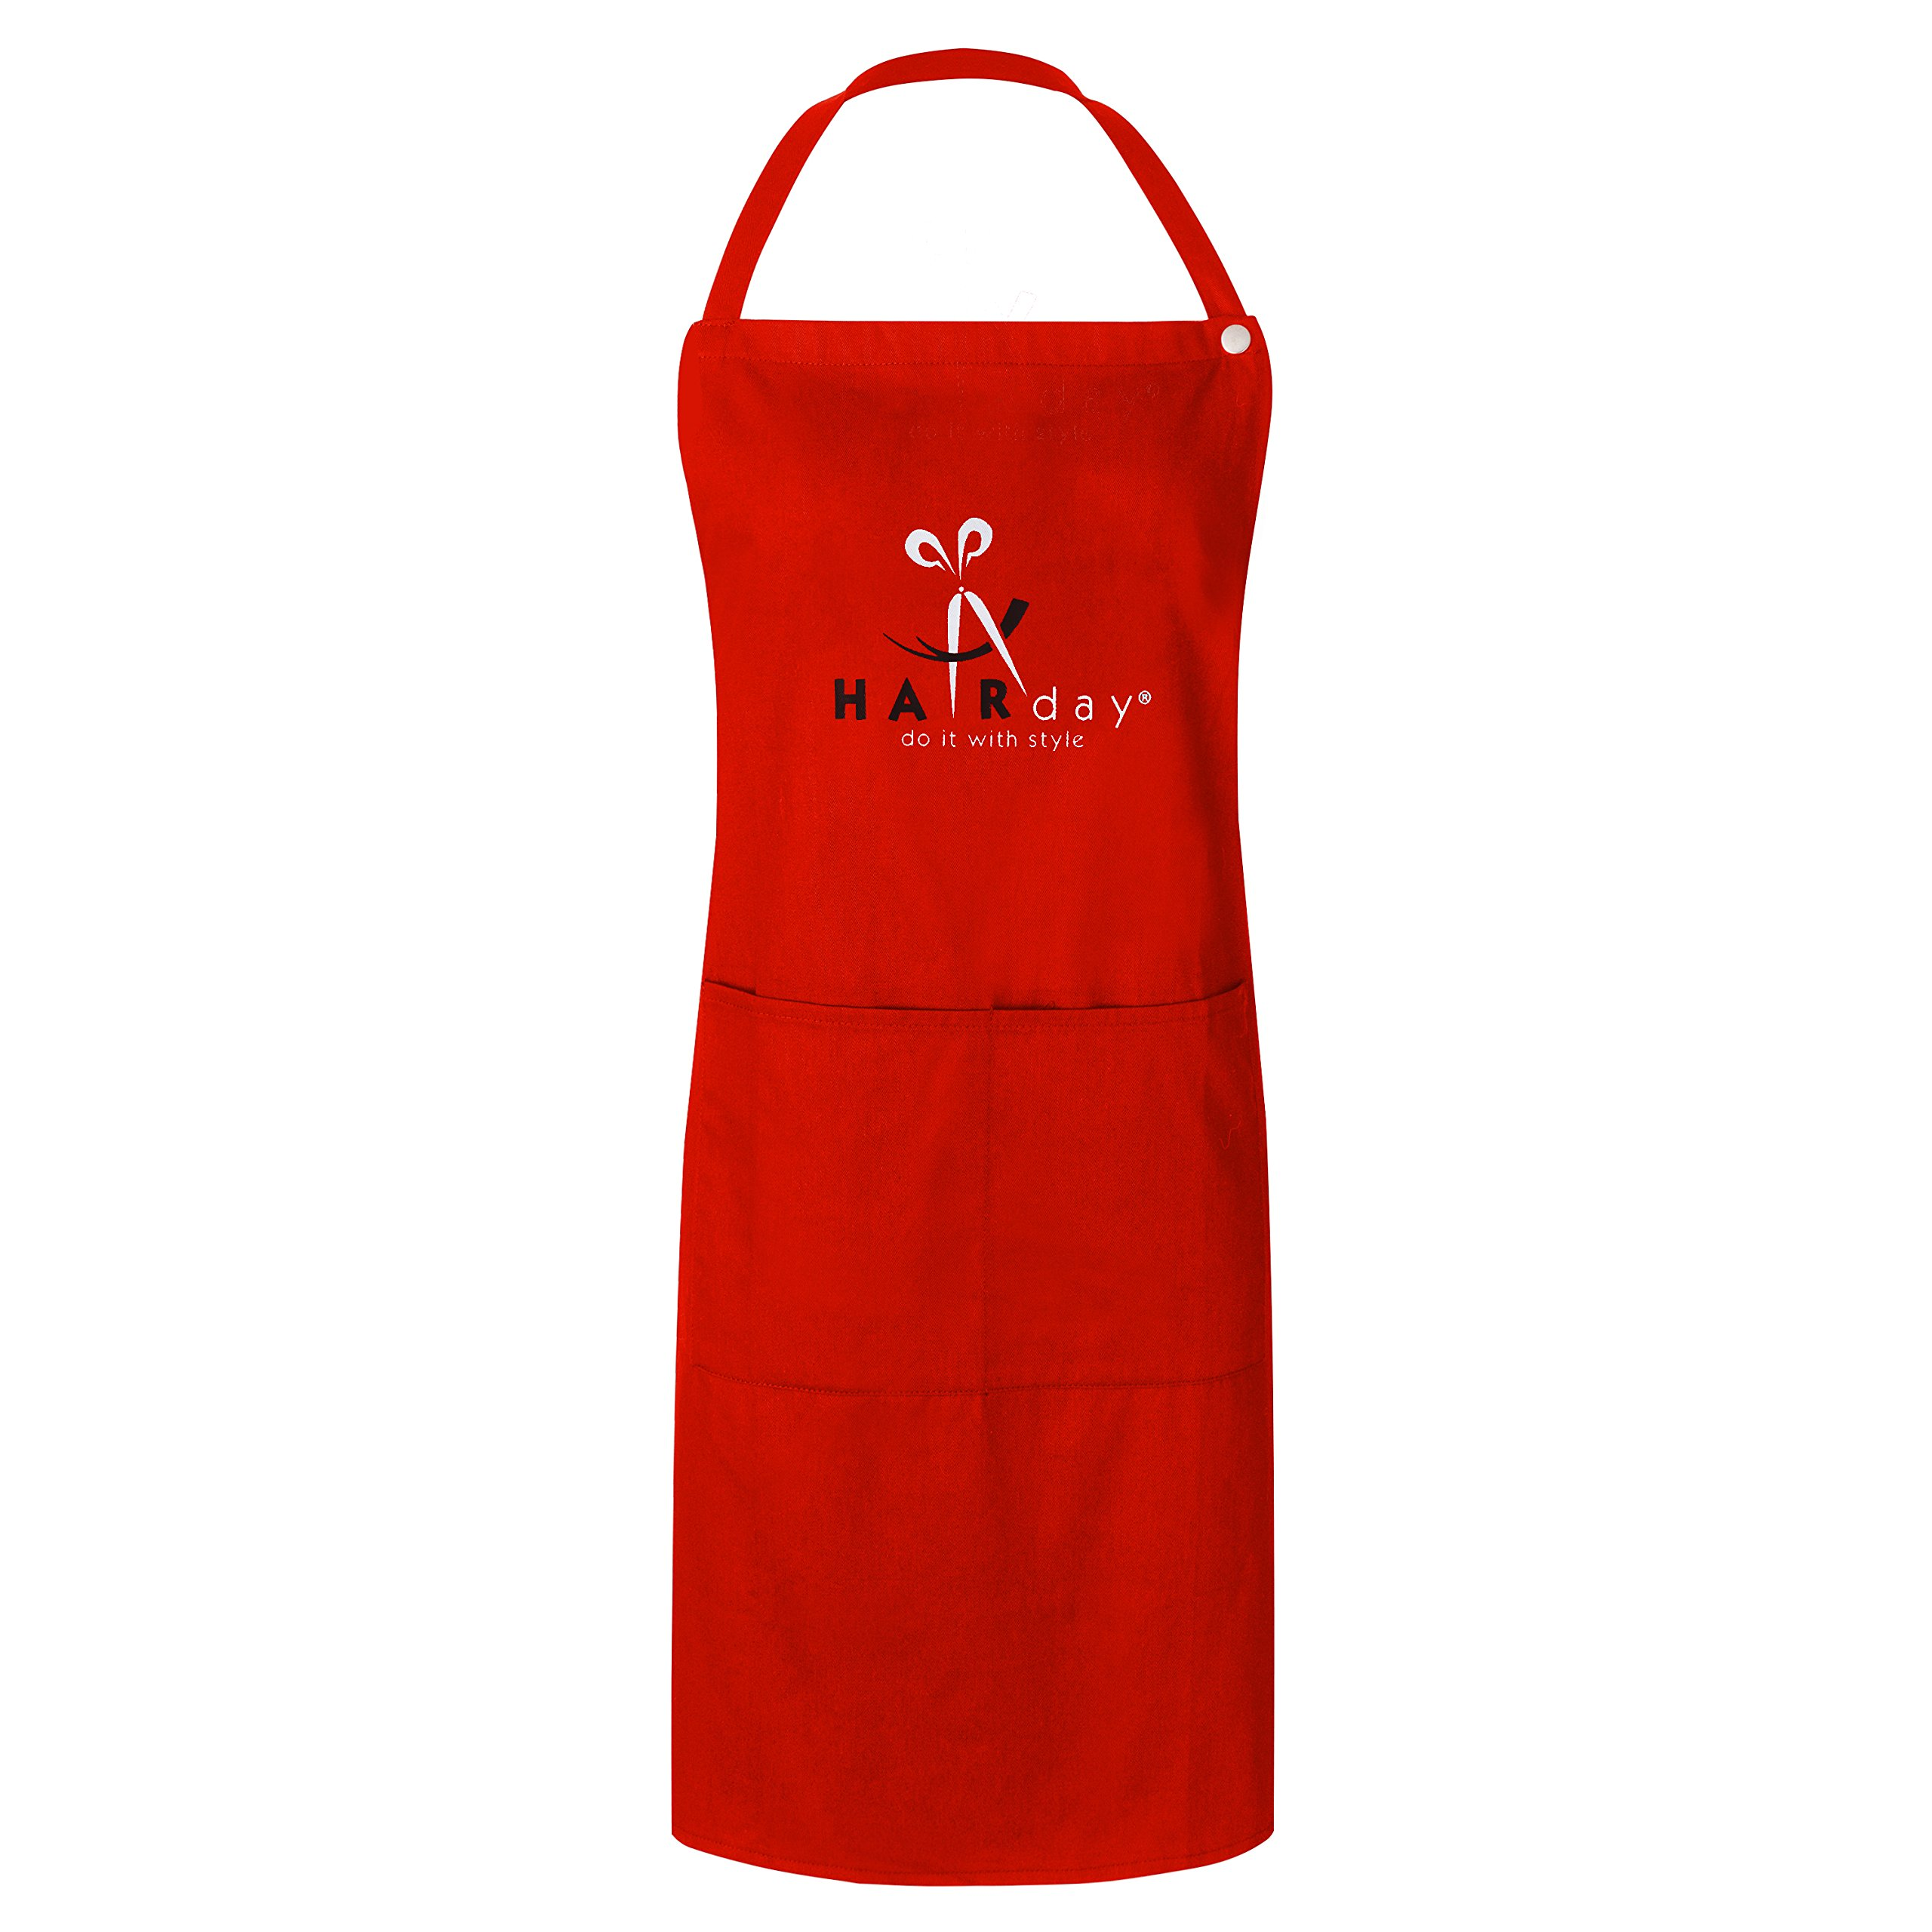 Snap Closure Bib Apron for Hairdresser, Hair Designer, Hair Care Professionals by the Professional Team of Hairday Care (Red)